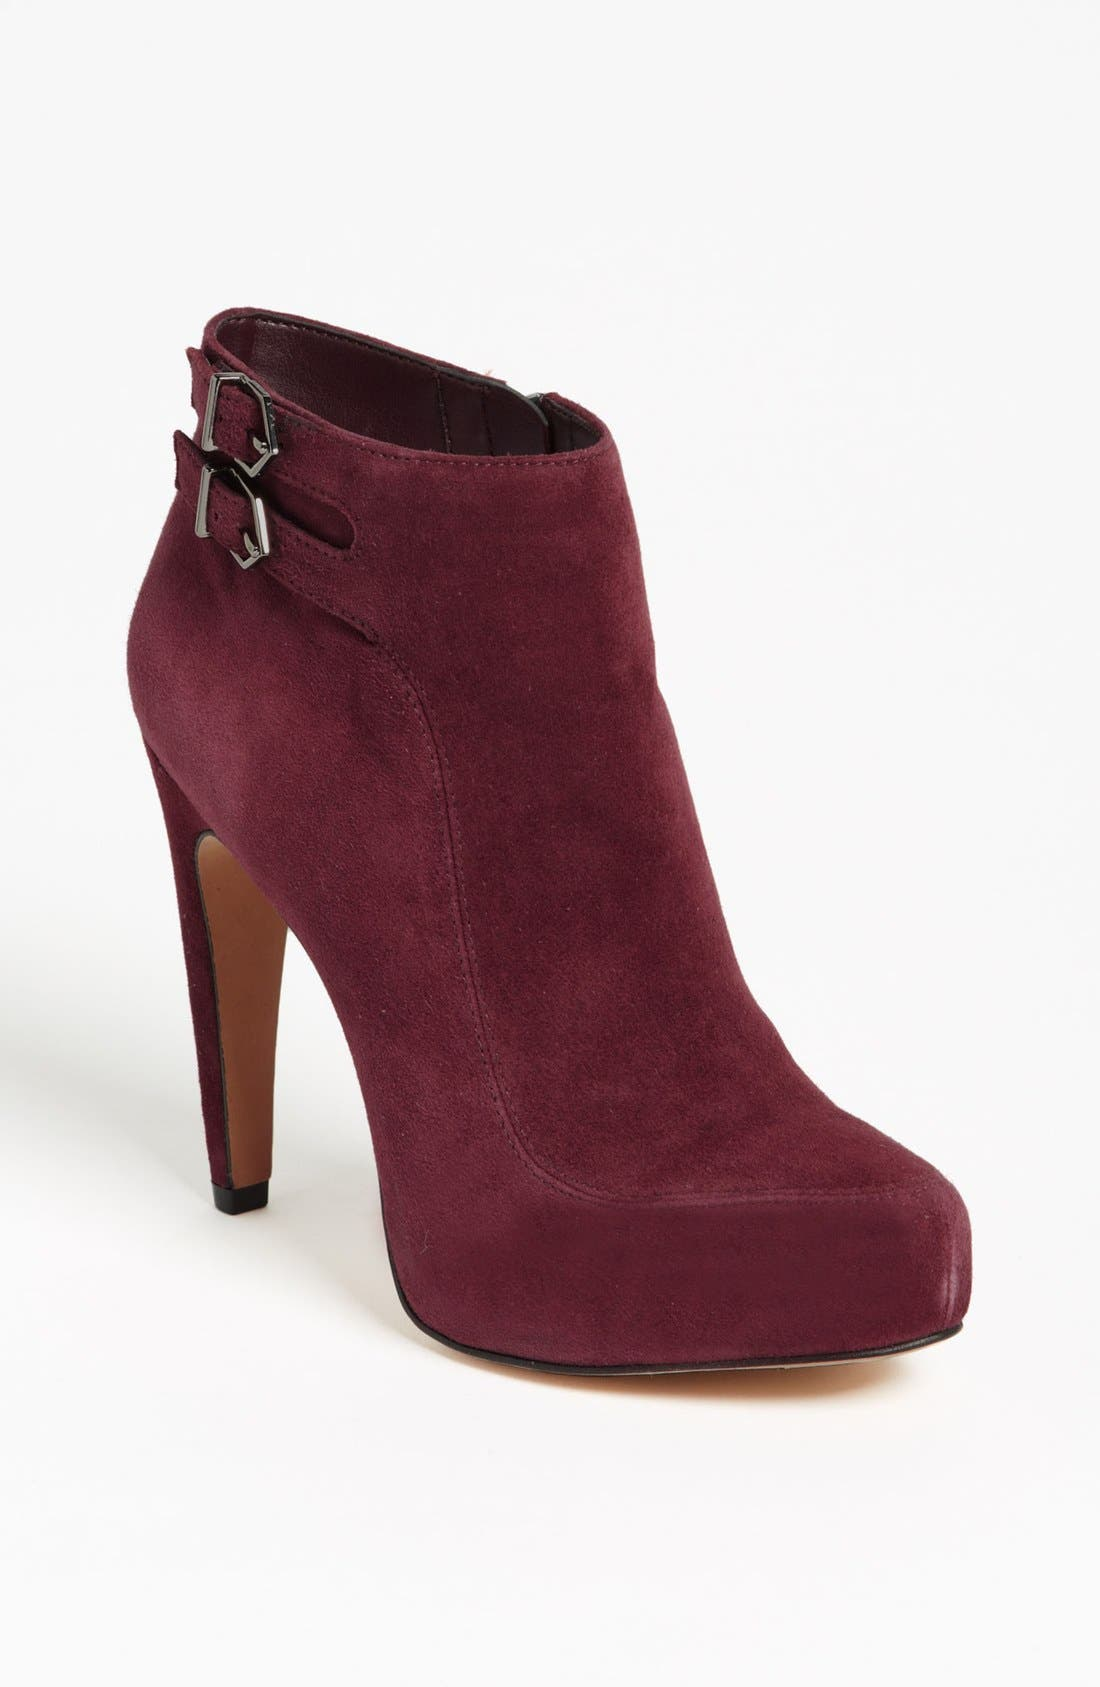 Main Image - Sam Edelman 'Kit' Boot